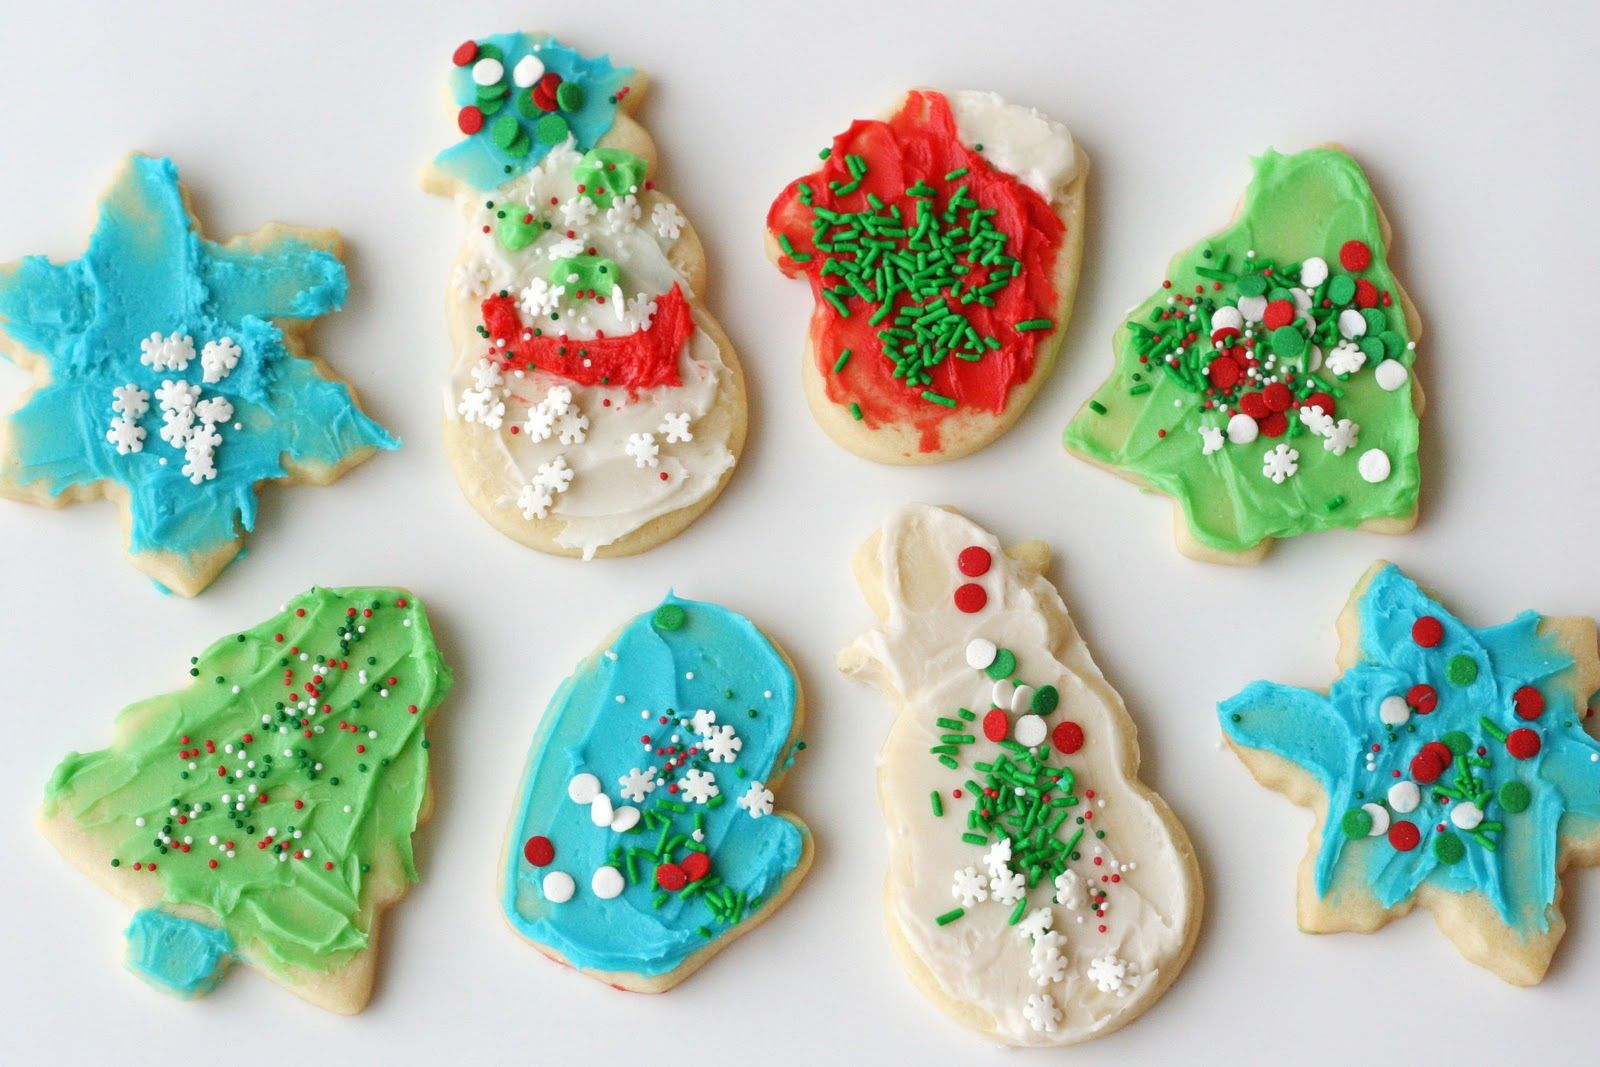 Elegant Cookie Decorating Kits For Kids {and Easy Butter Frosting Recipe